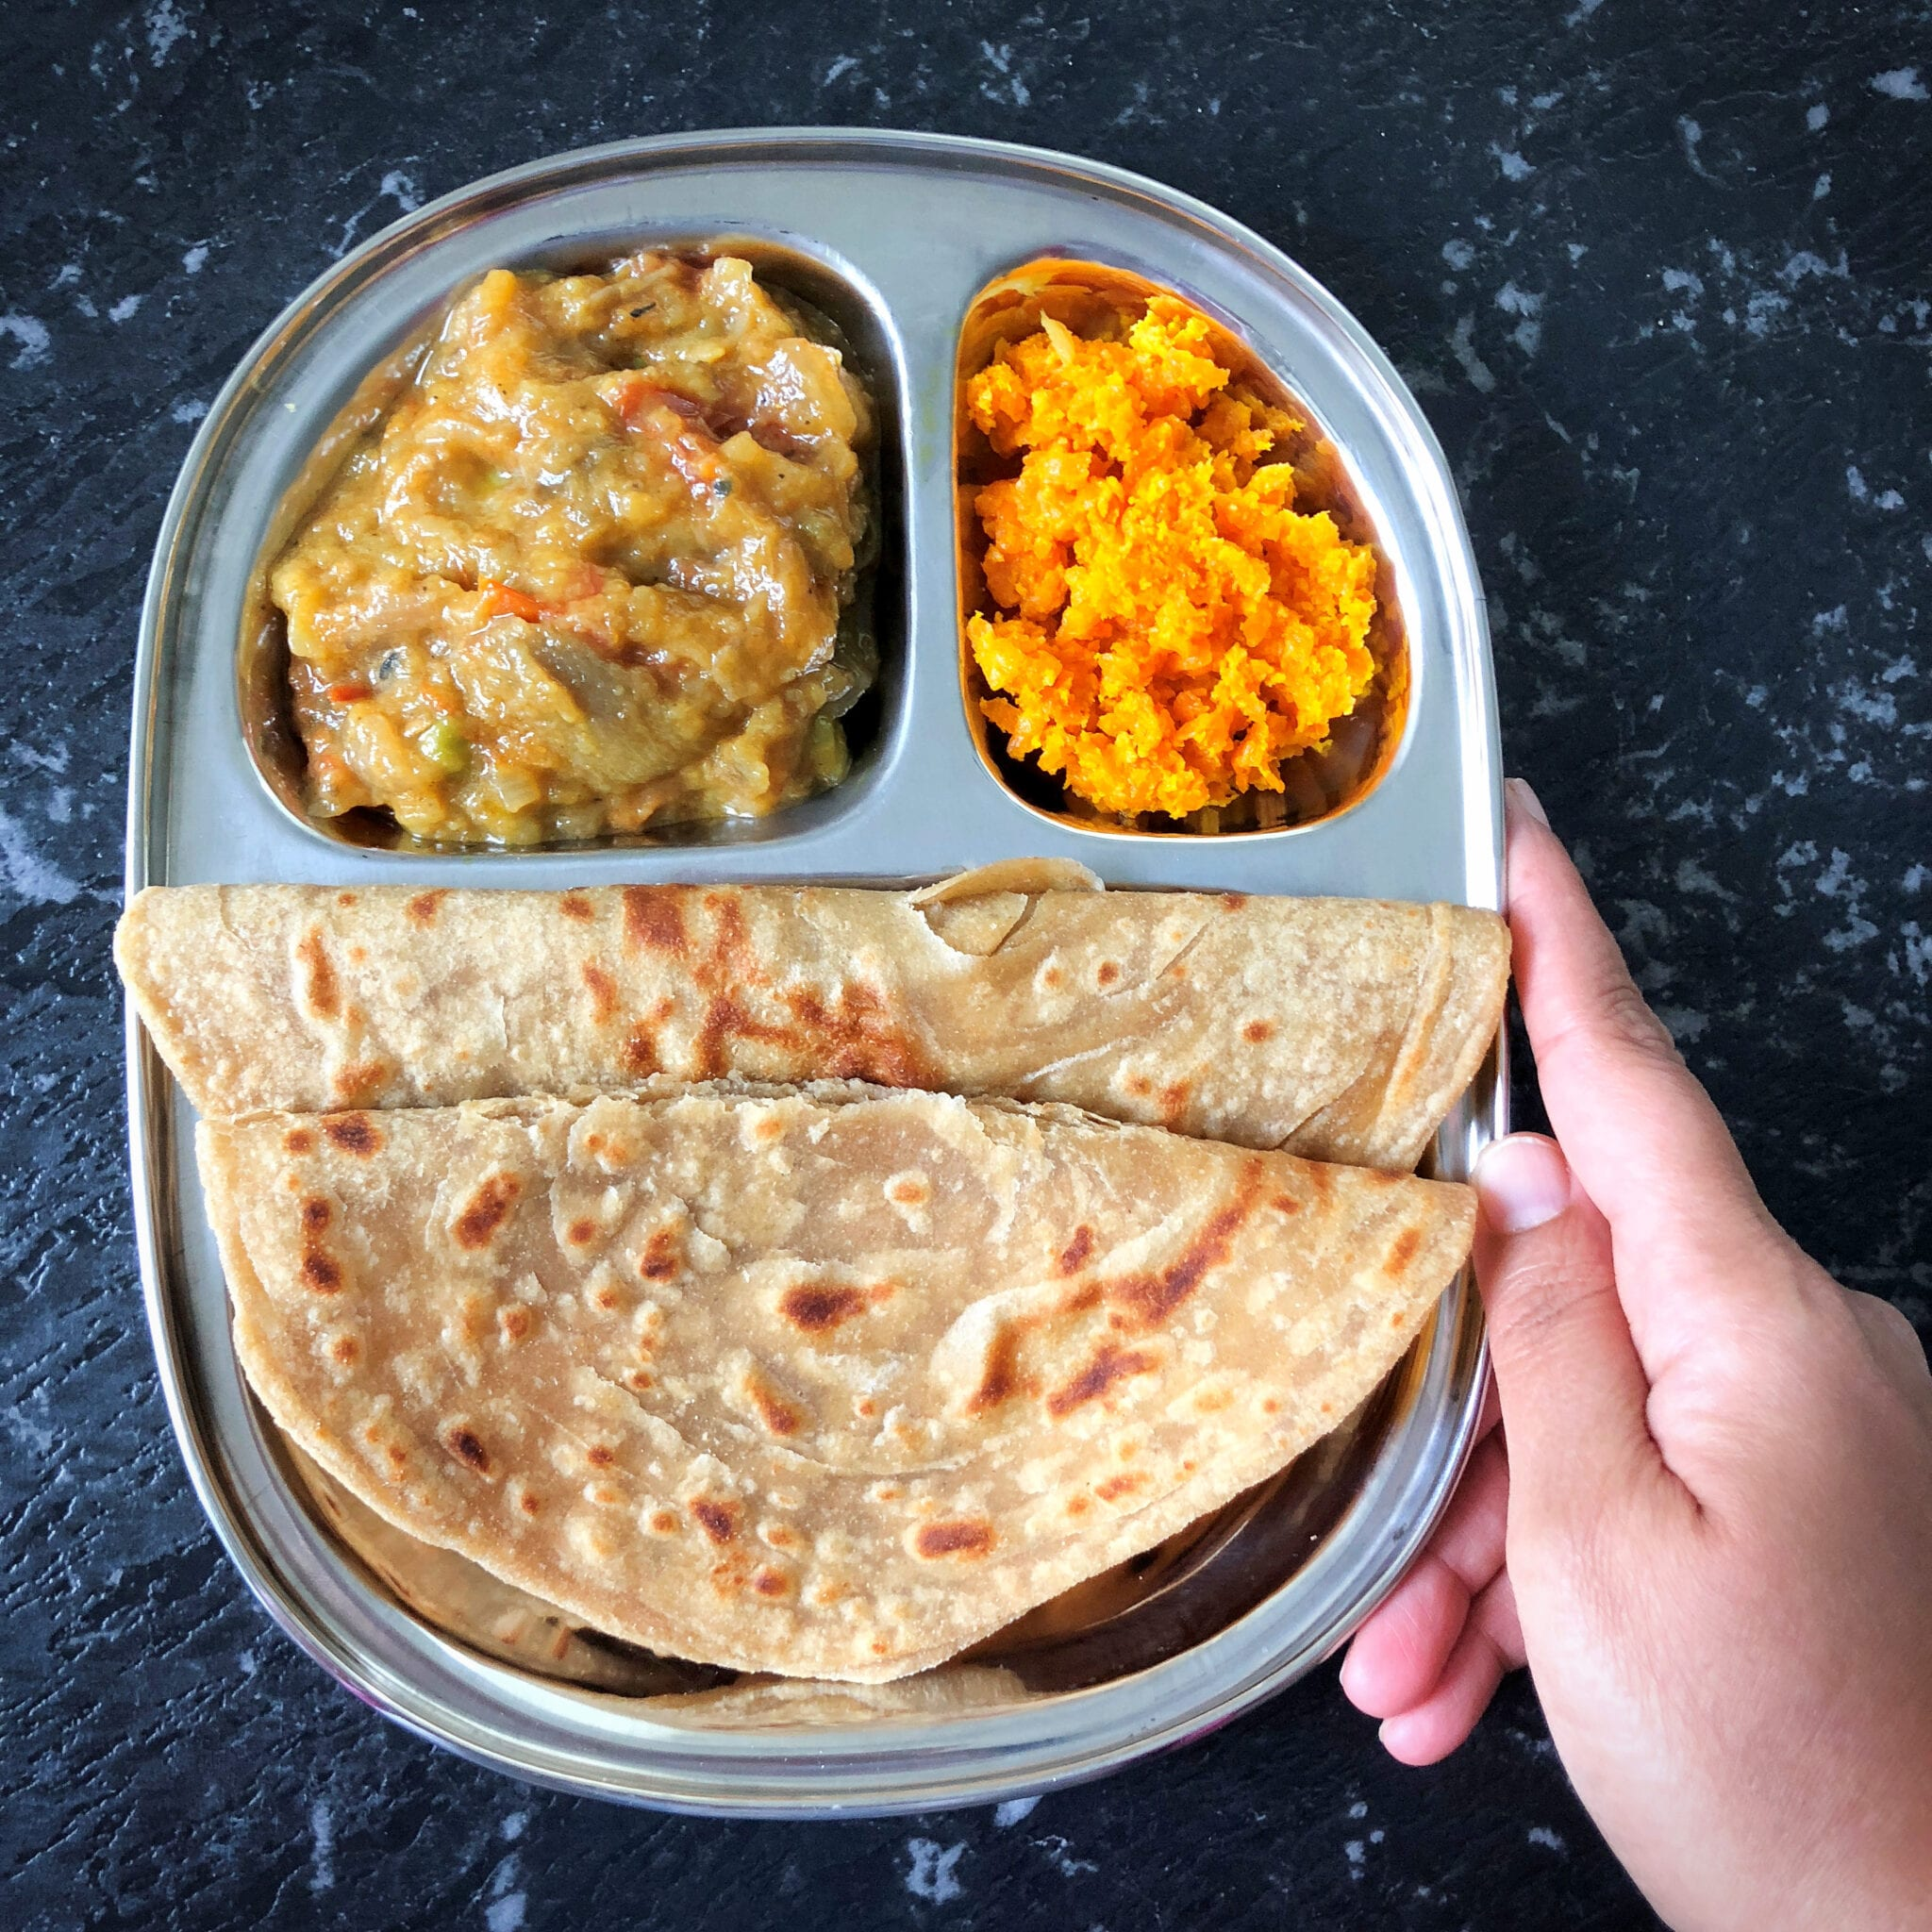 Lachha Paratha served with baingan bharta (eggplant roast) and carrot halwa for a completel meal